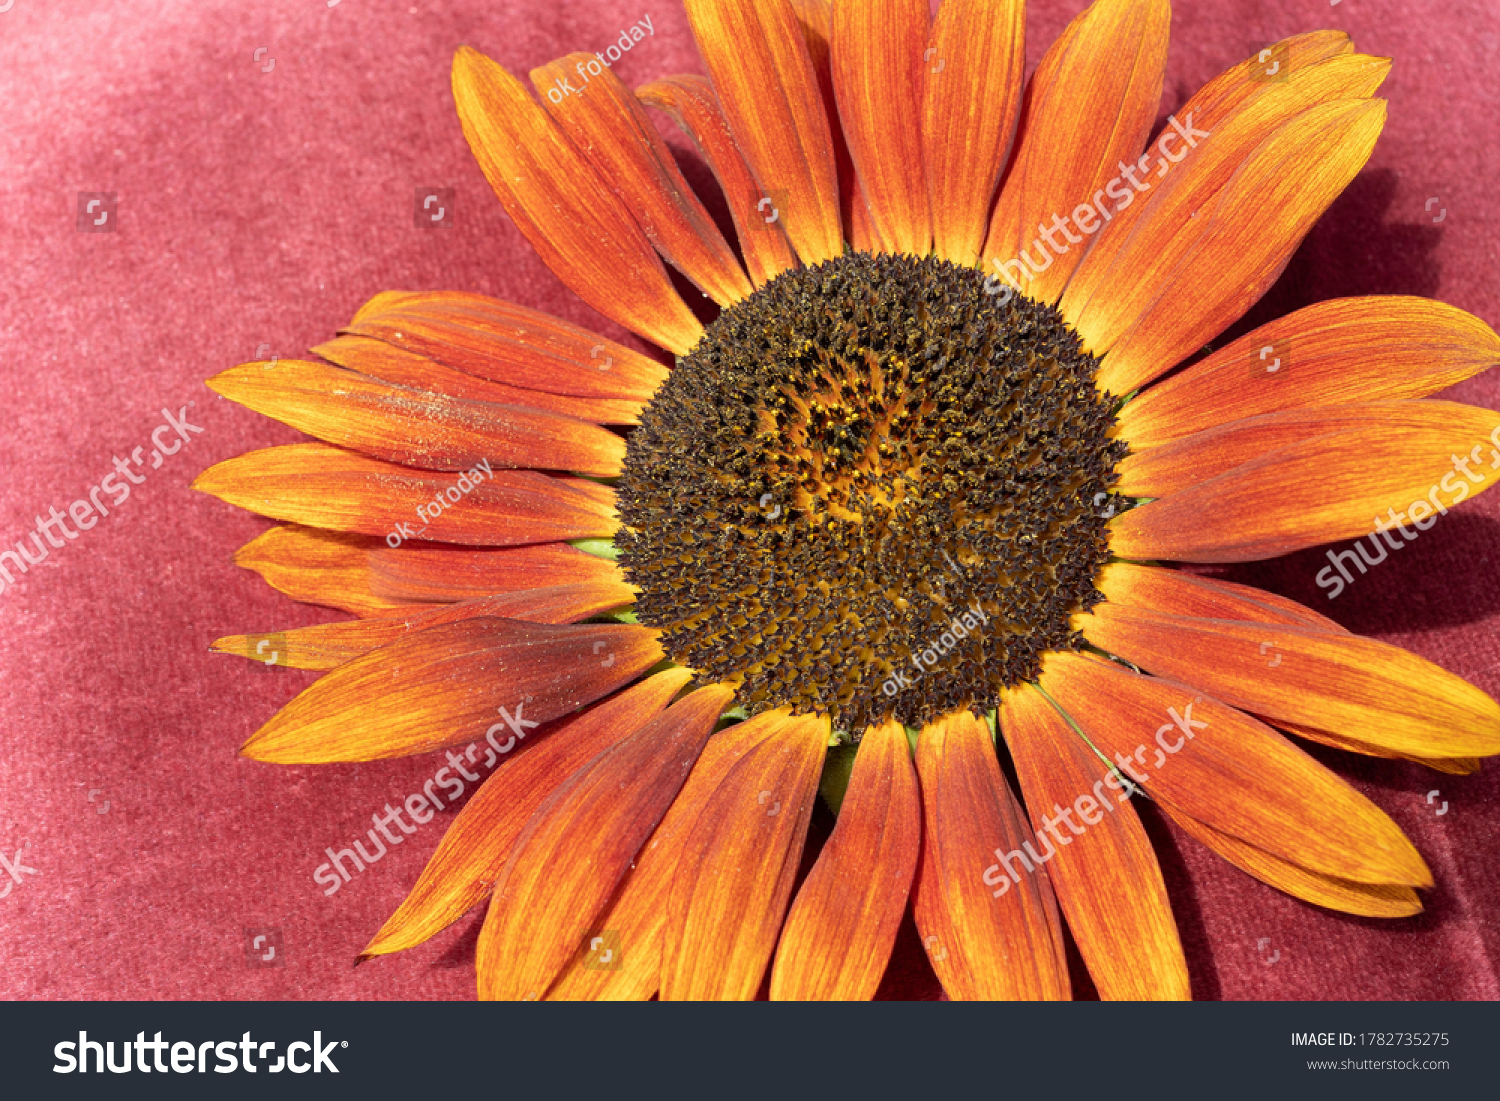 Decorative sunflower of dark orange color on a velvet background